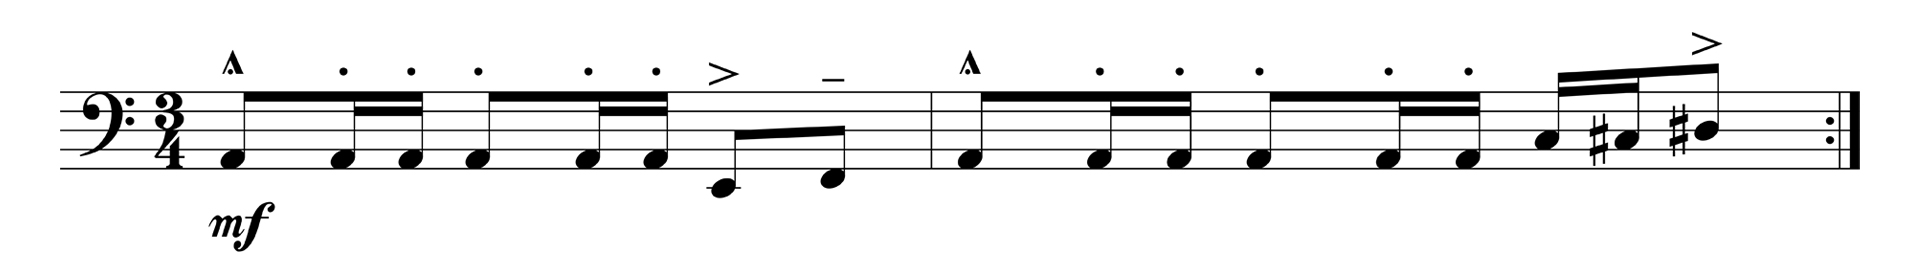 Music arrangement illustrating a linear melodic shape.